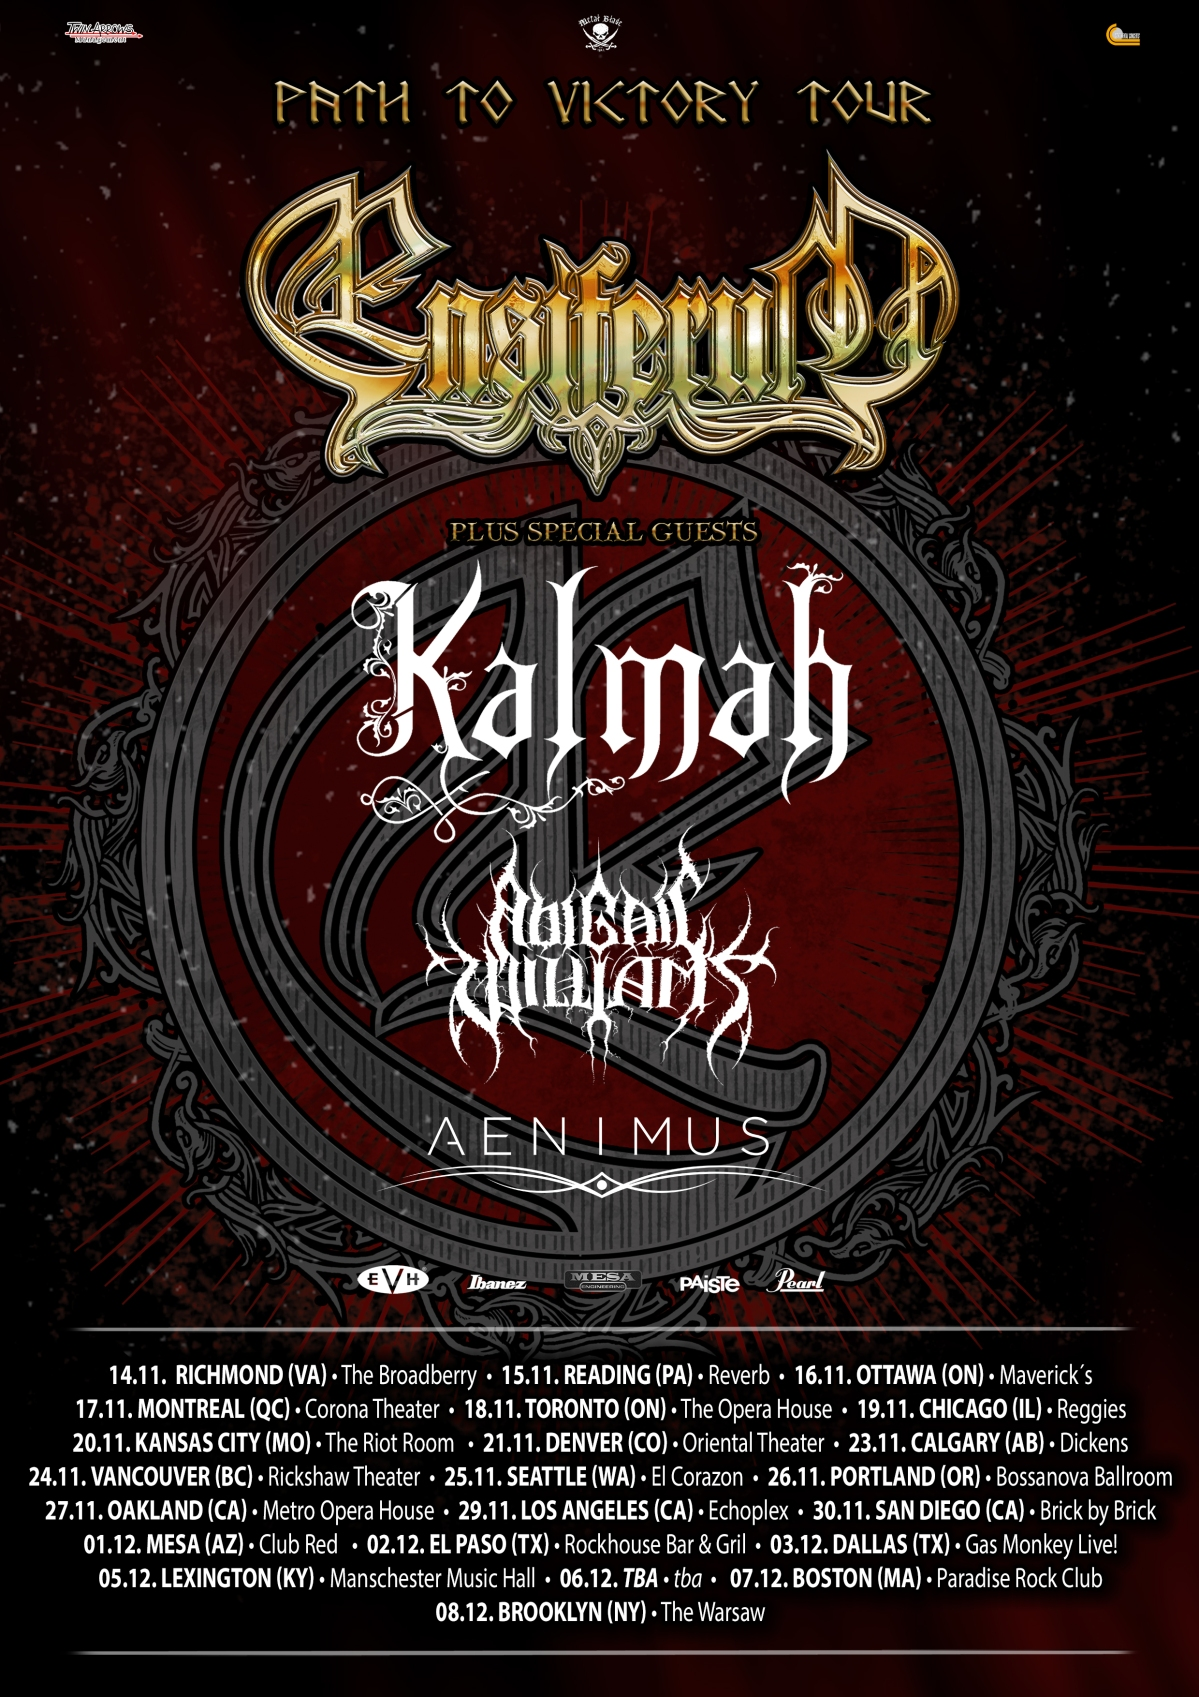 AENIMUS Announce Path To Victory Tour With Headliners ENSIFERUM!